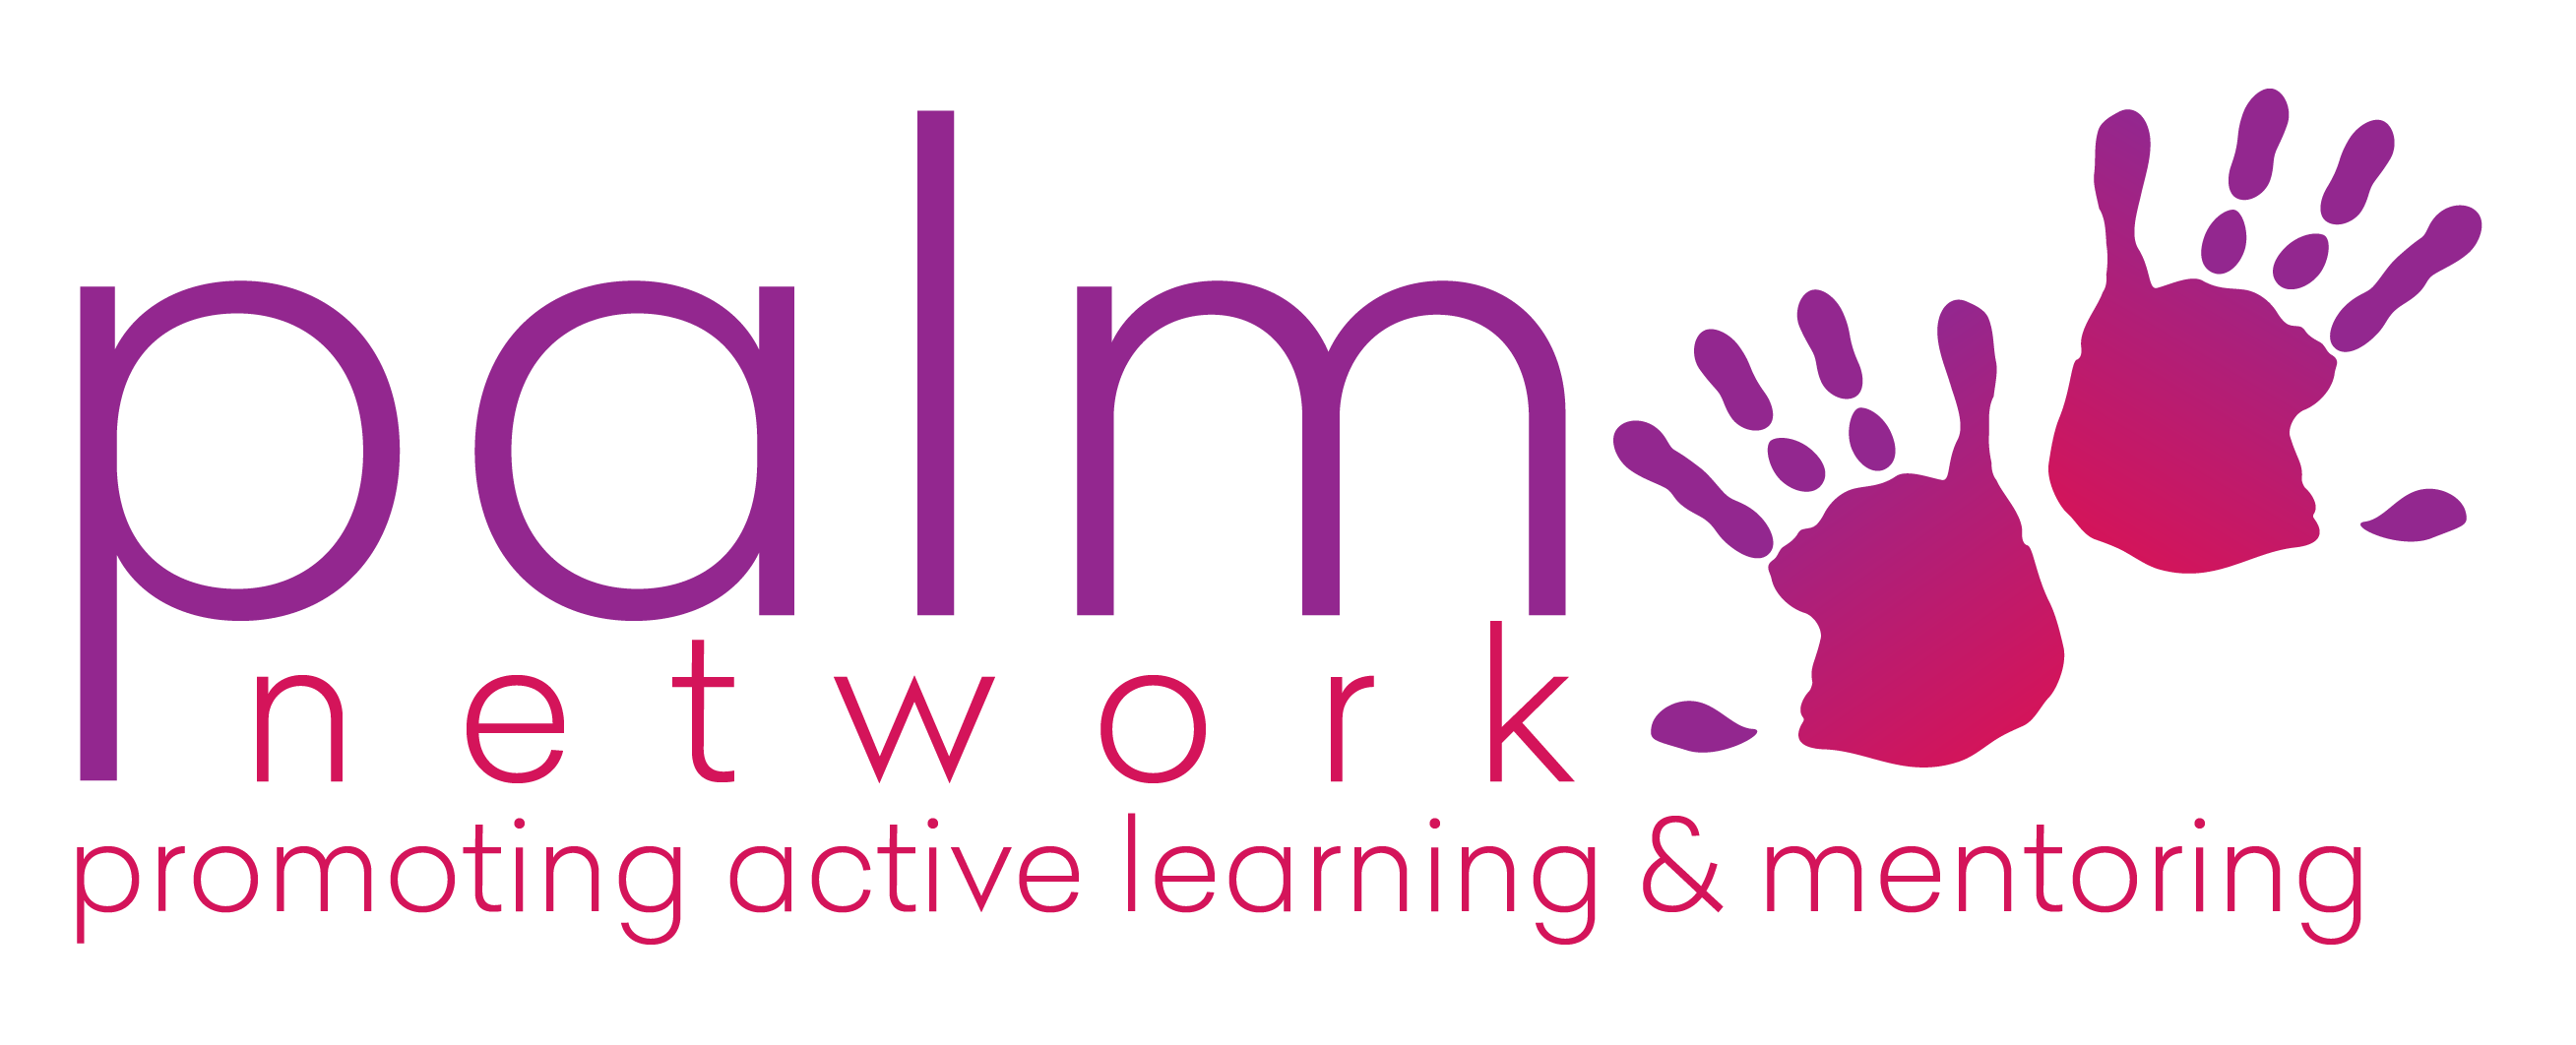 professional societies alliance for life science education psalse a recent collaboration involving psalse affiliates and others interested in vision change has resulted in the promoting active learning mentoring palm